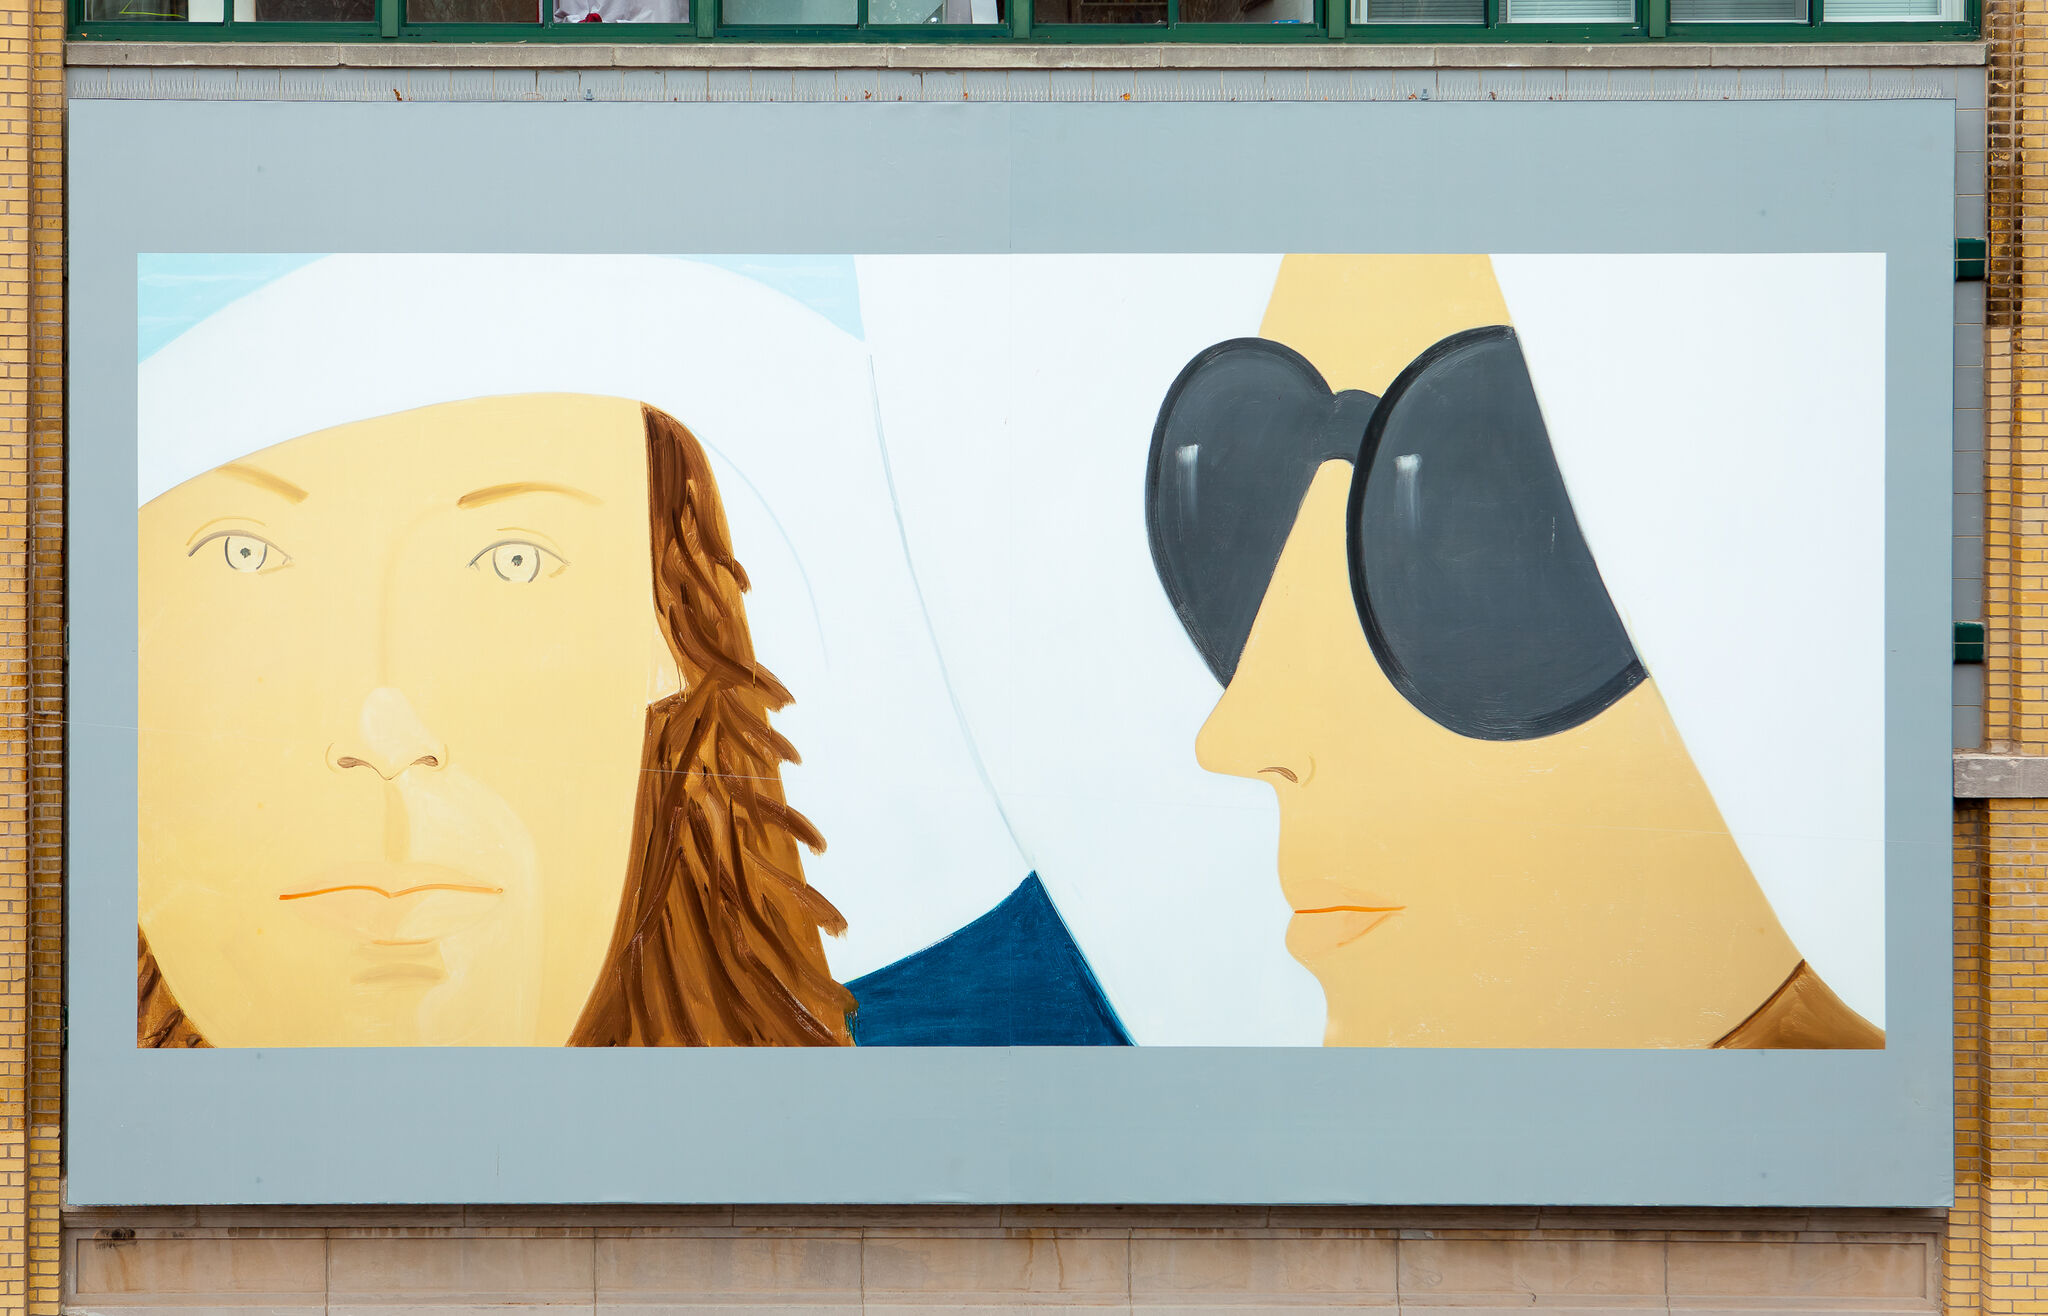 A billboard showing a close-up view of two people's faces.